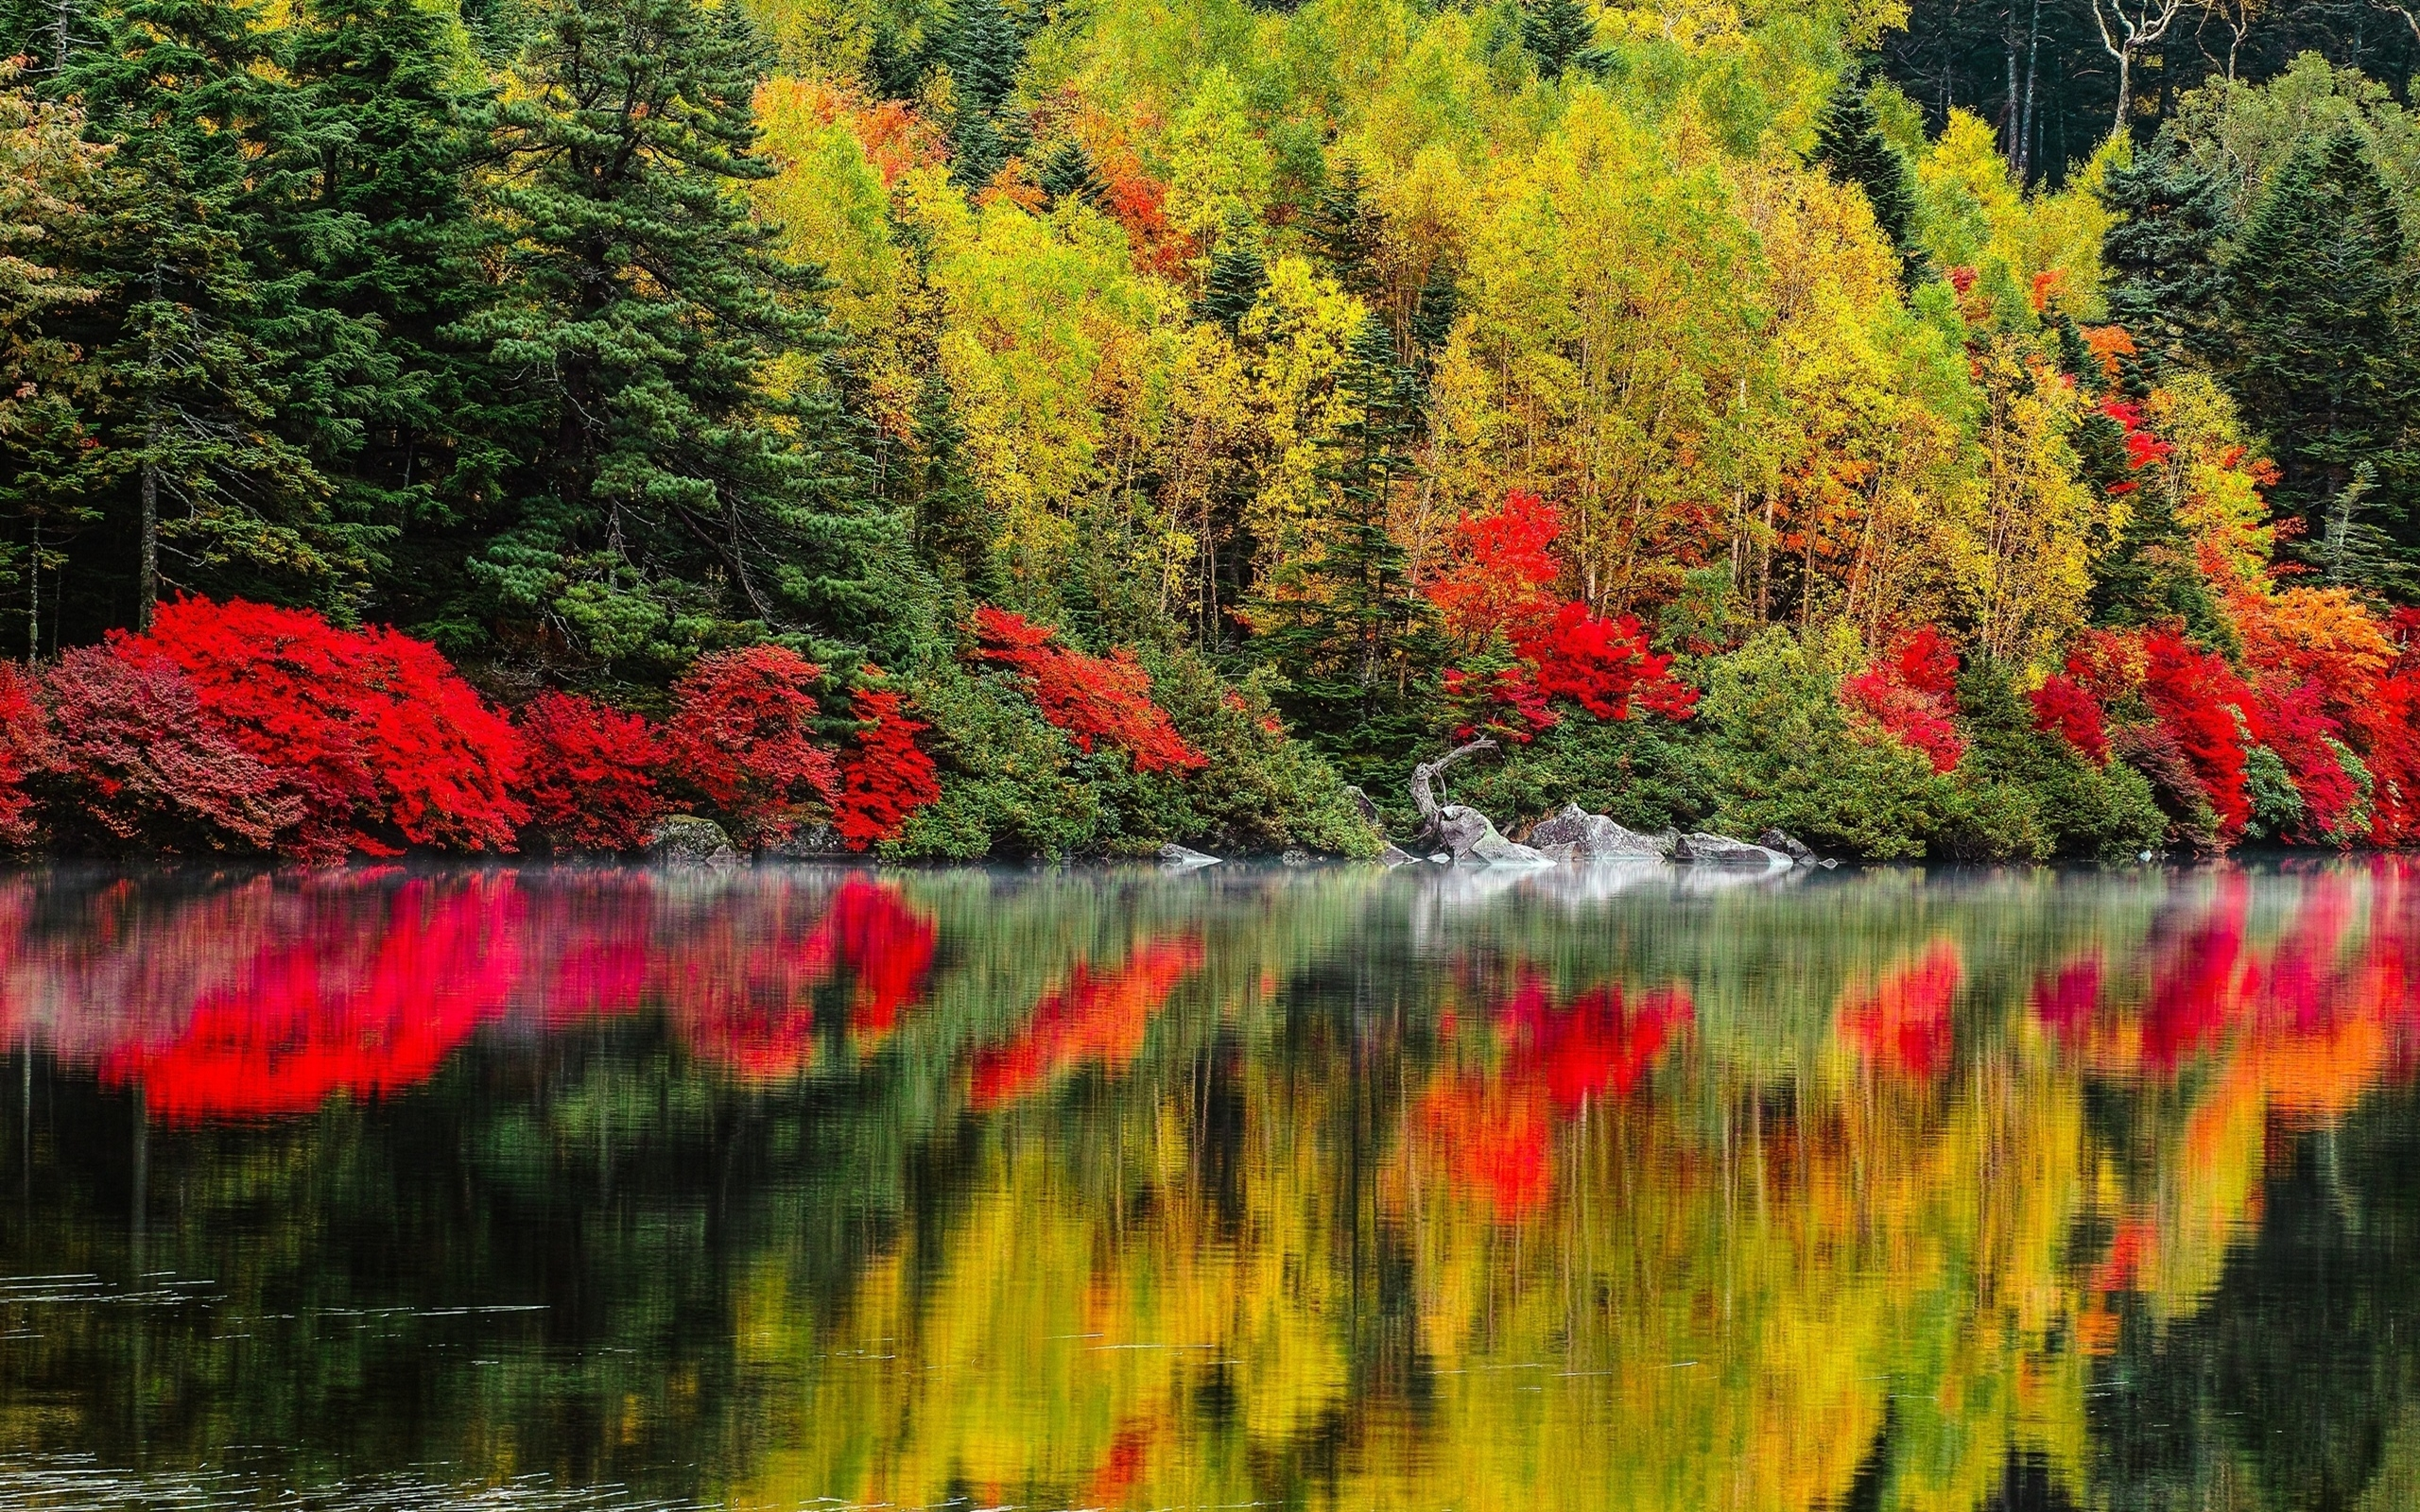 Happy Fall Wallpaper 1366x768 Reflections Nature Fall Pond Shore Forest Hd Wallpaper A